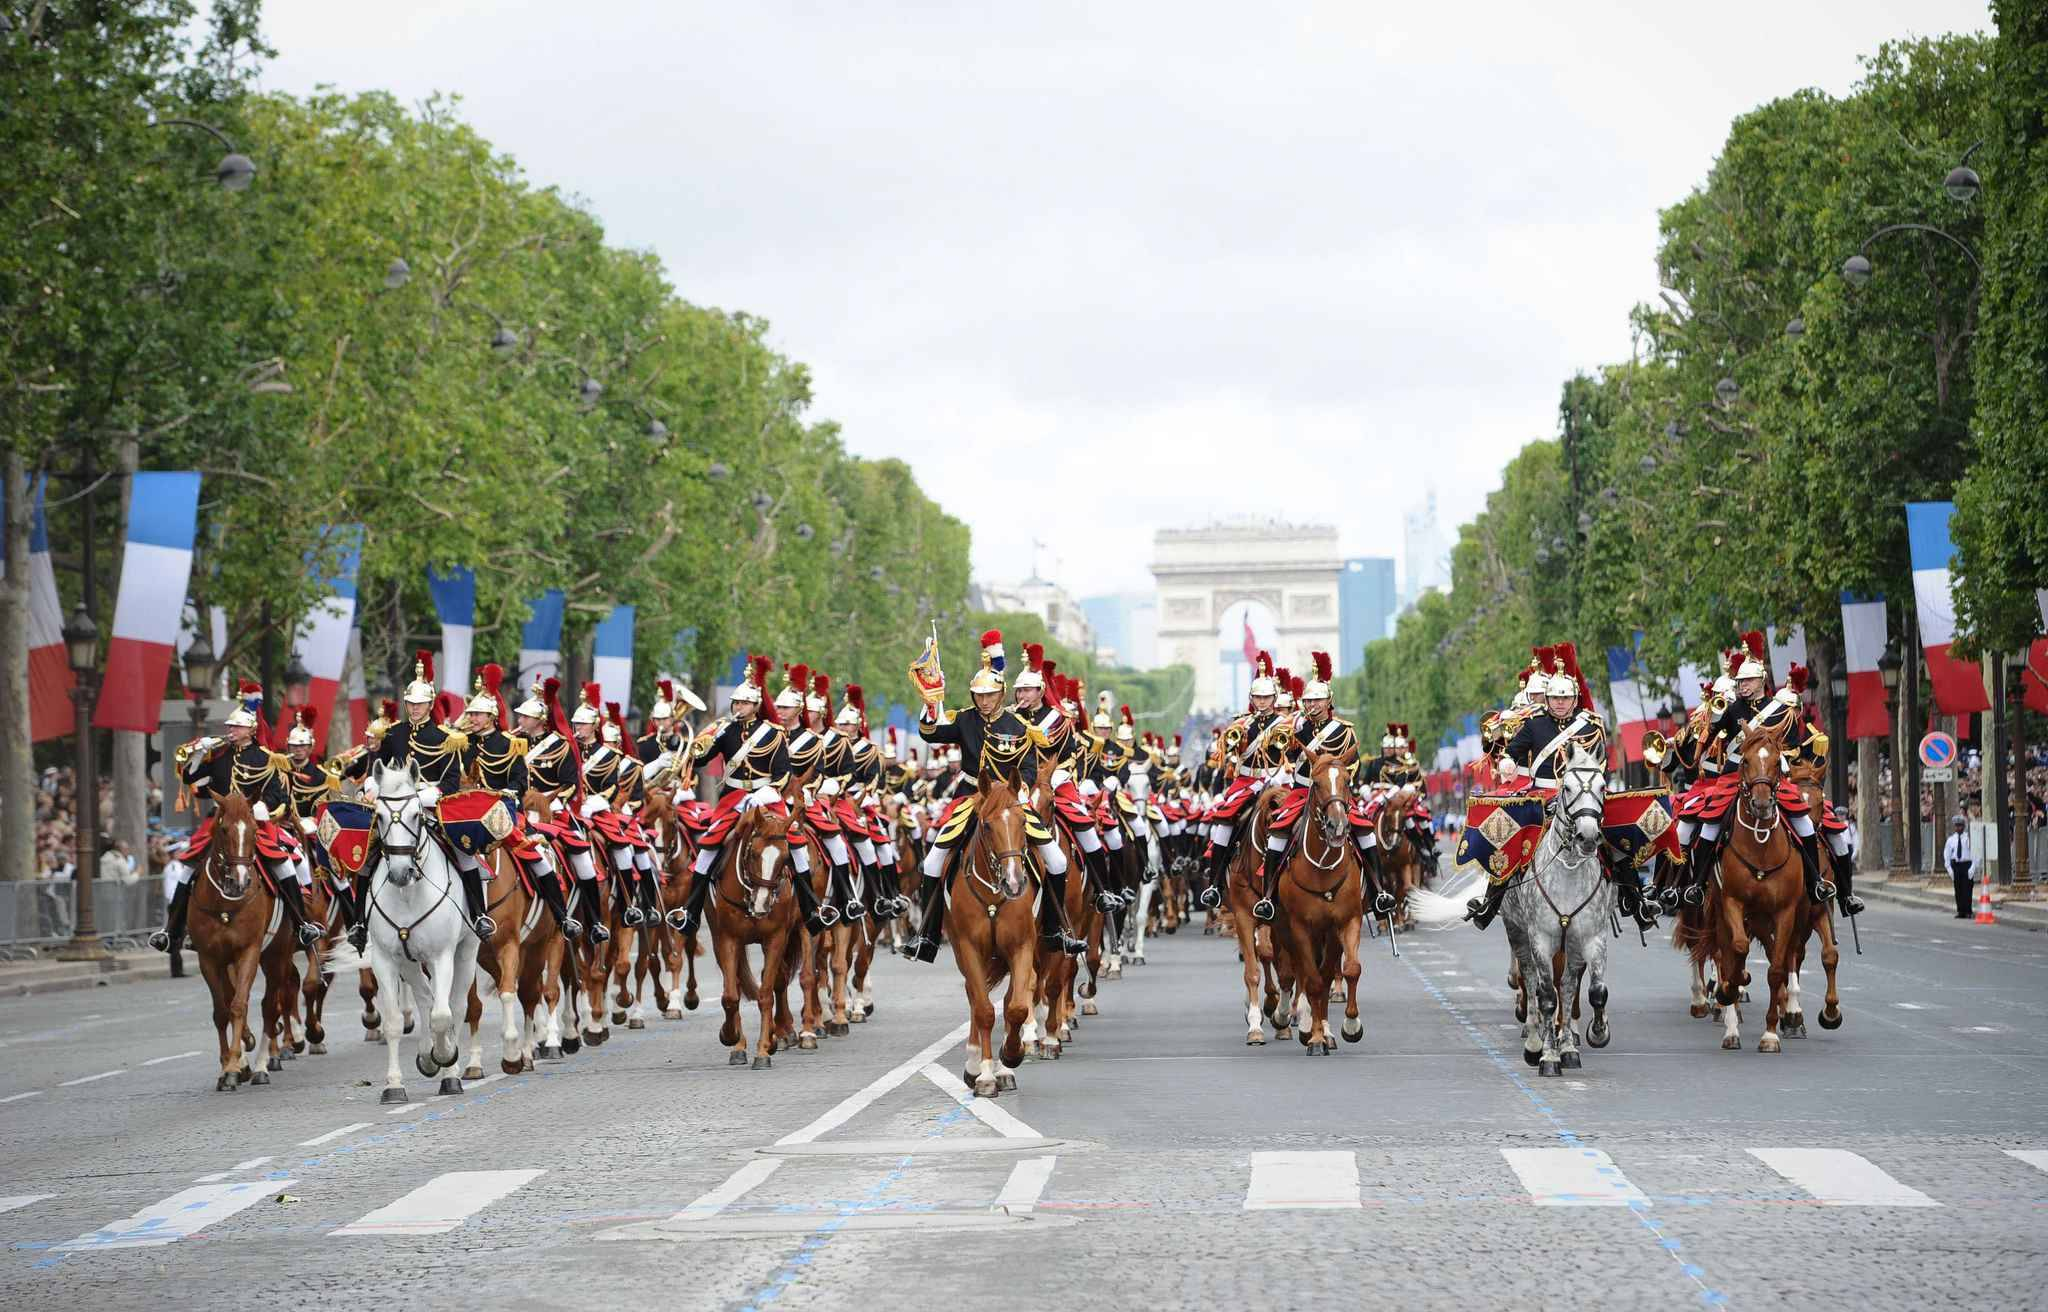 Atmopshere during 2012 Annual Military Parade at the Champs Elysees in Paris, France, on July 14, 2012.